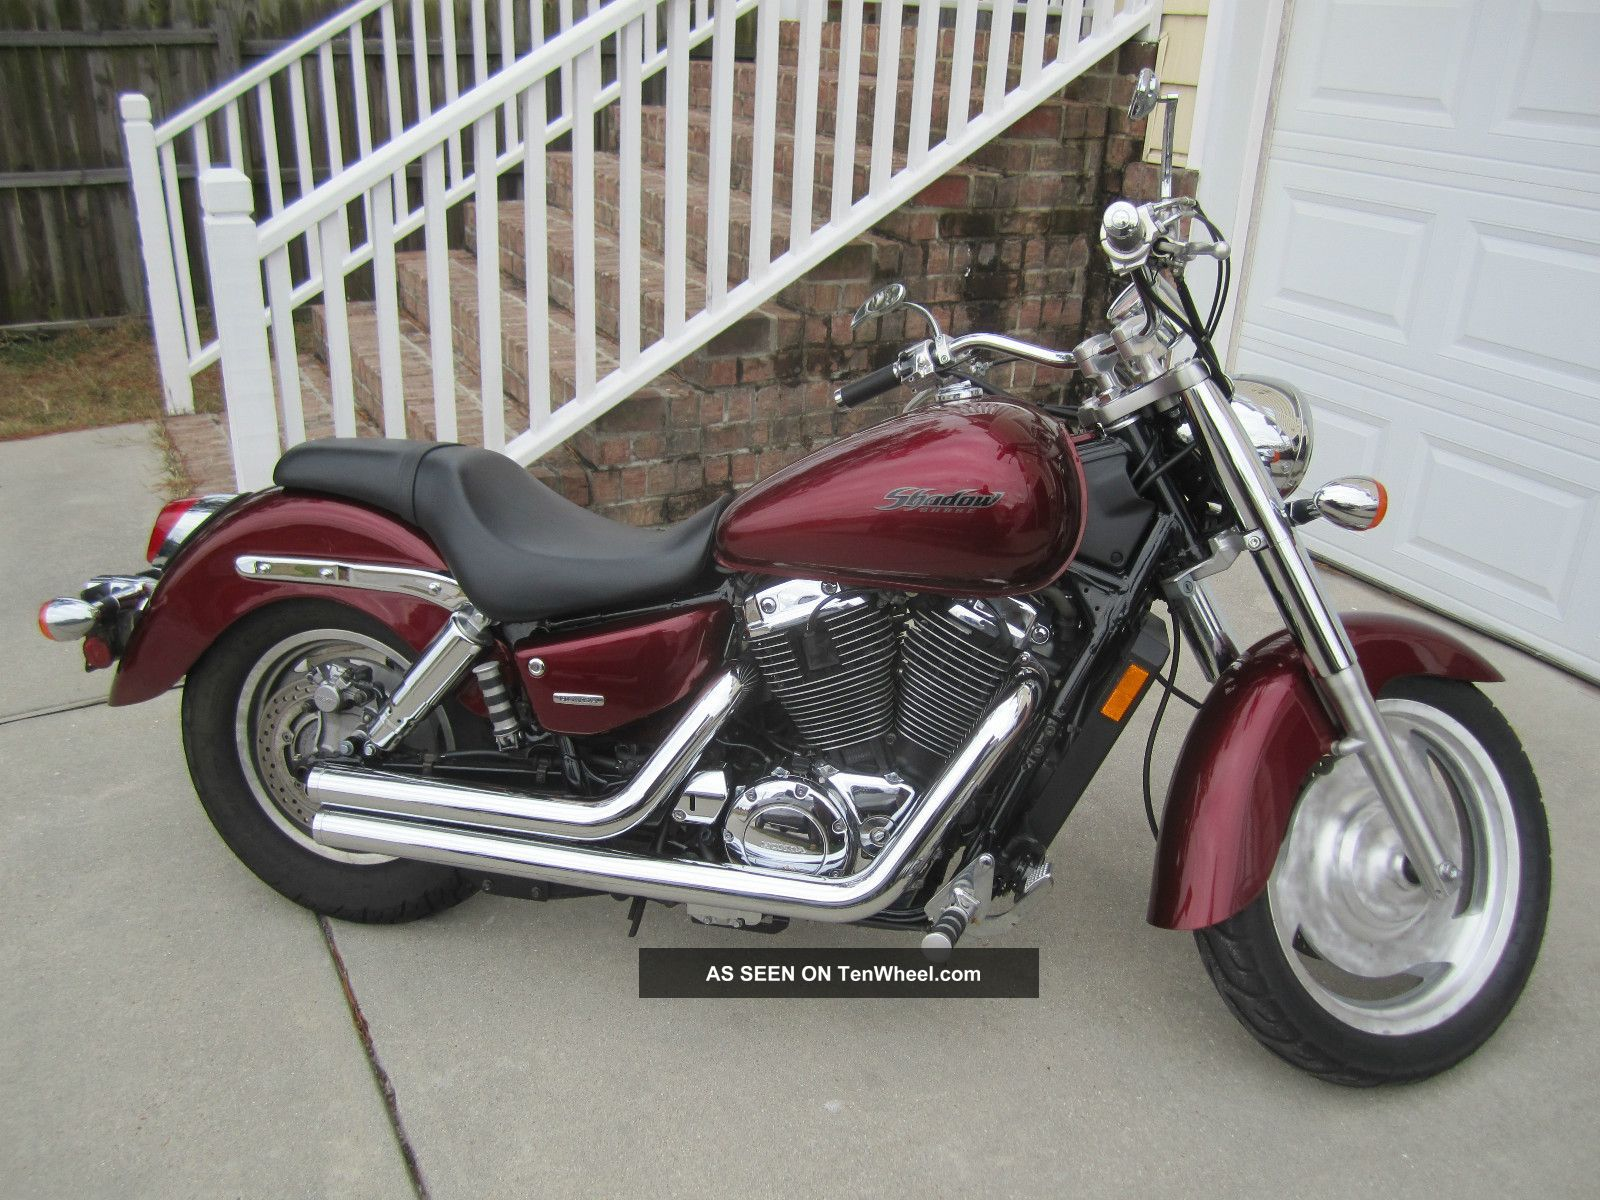 2007 Honda Shadow Sabre #7